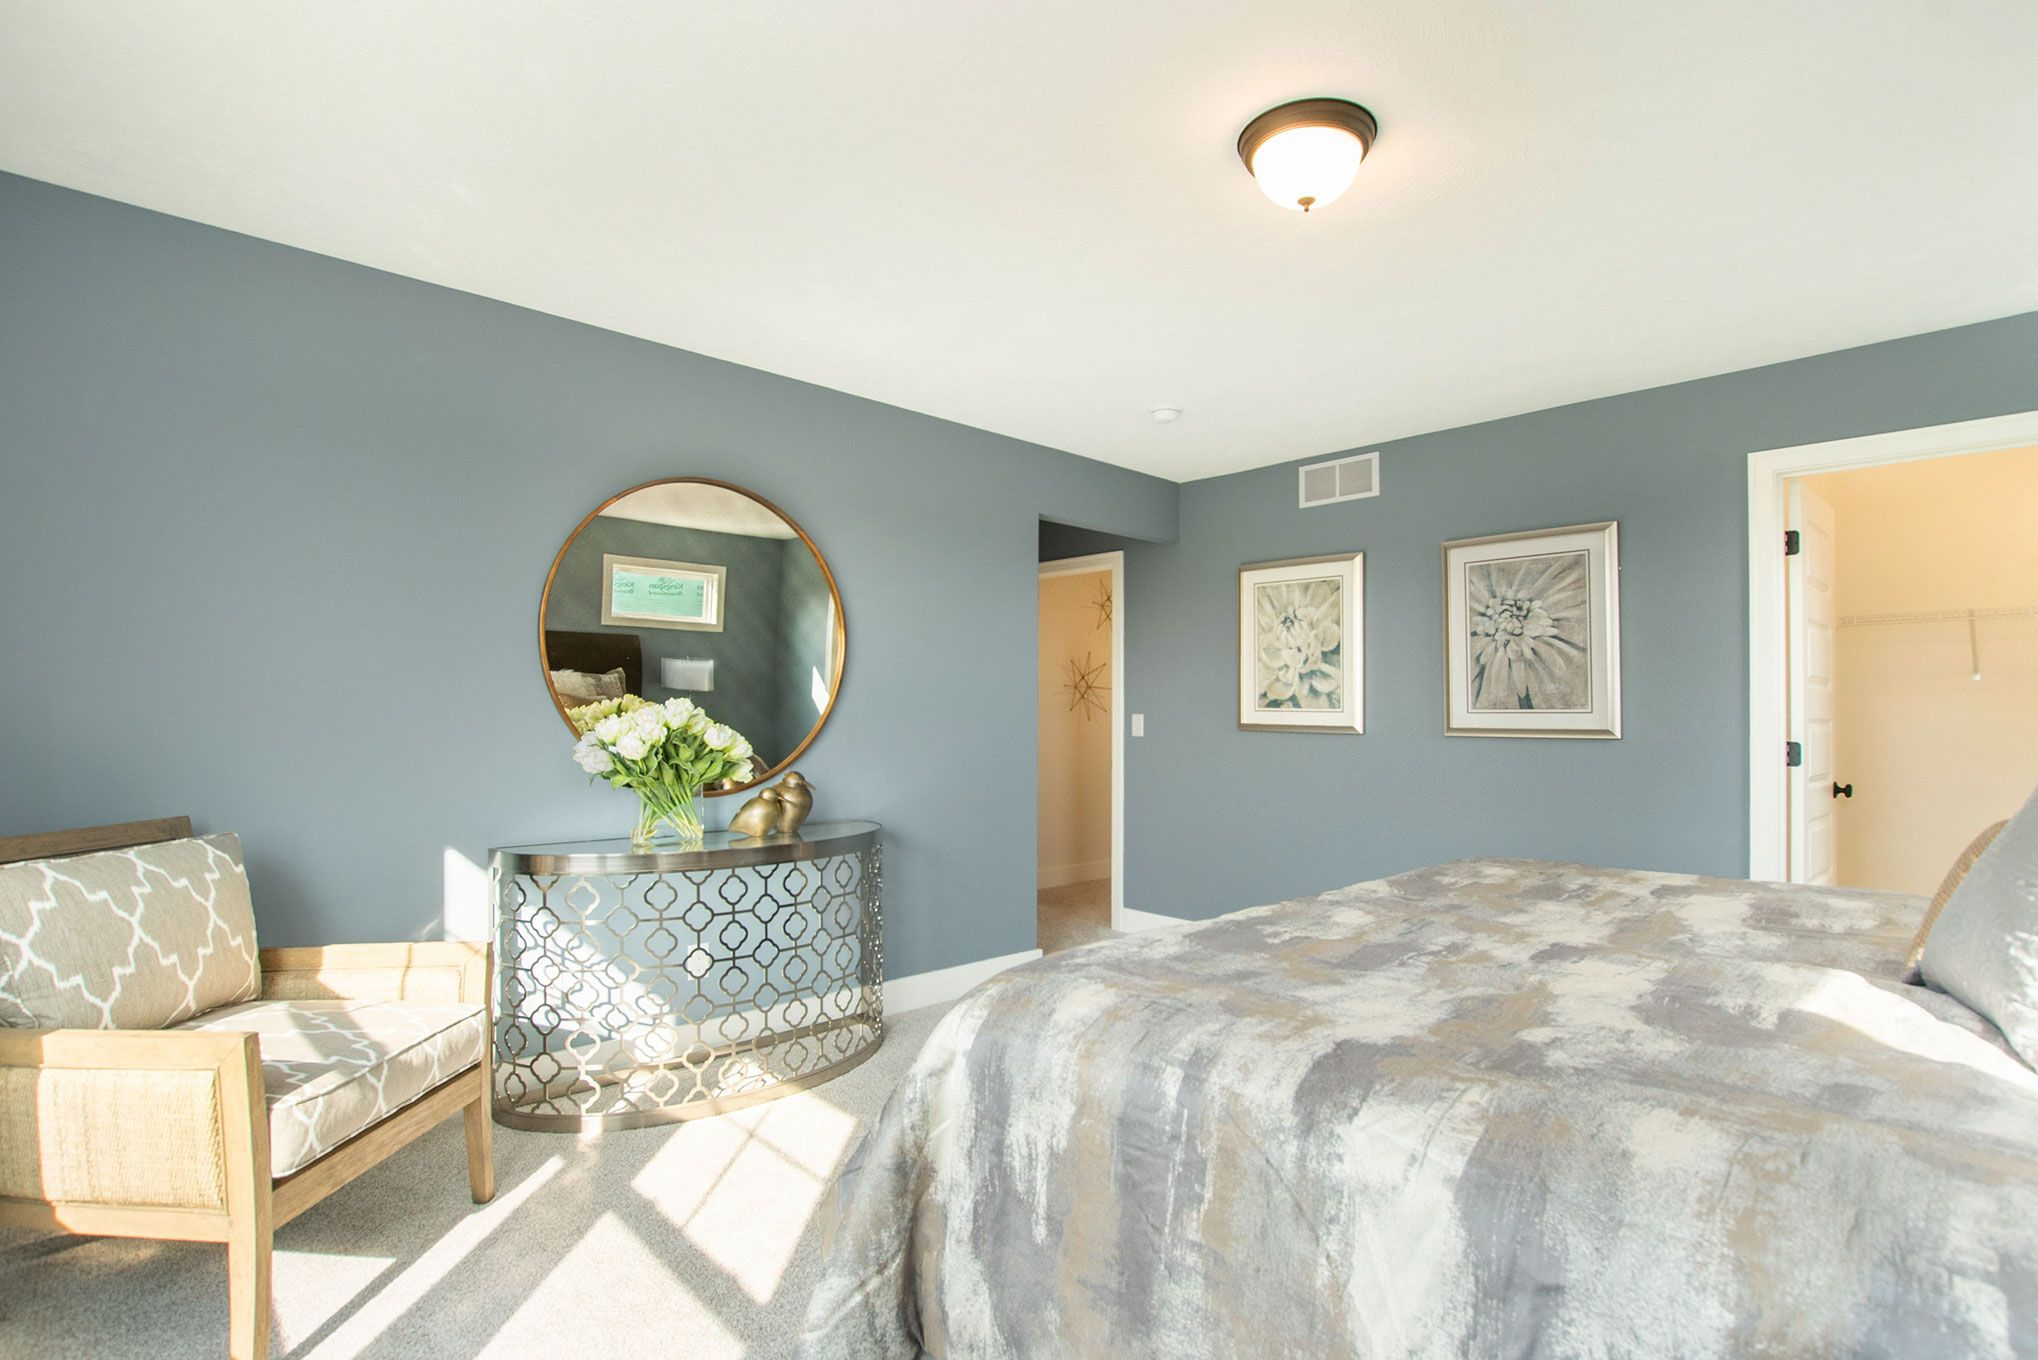 Bedroom featured in The Lowing Woods Townhome By Eastbrook Homes Inc. in Grand Rapids, MI